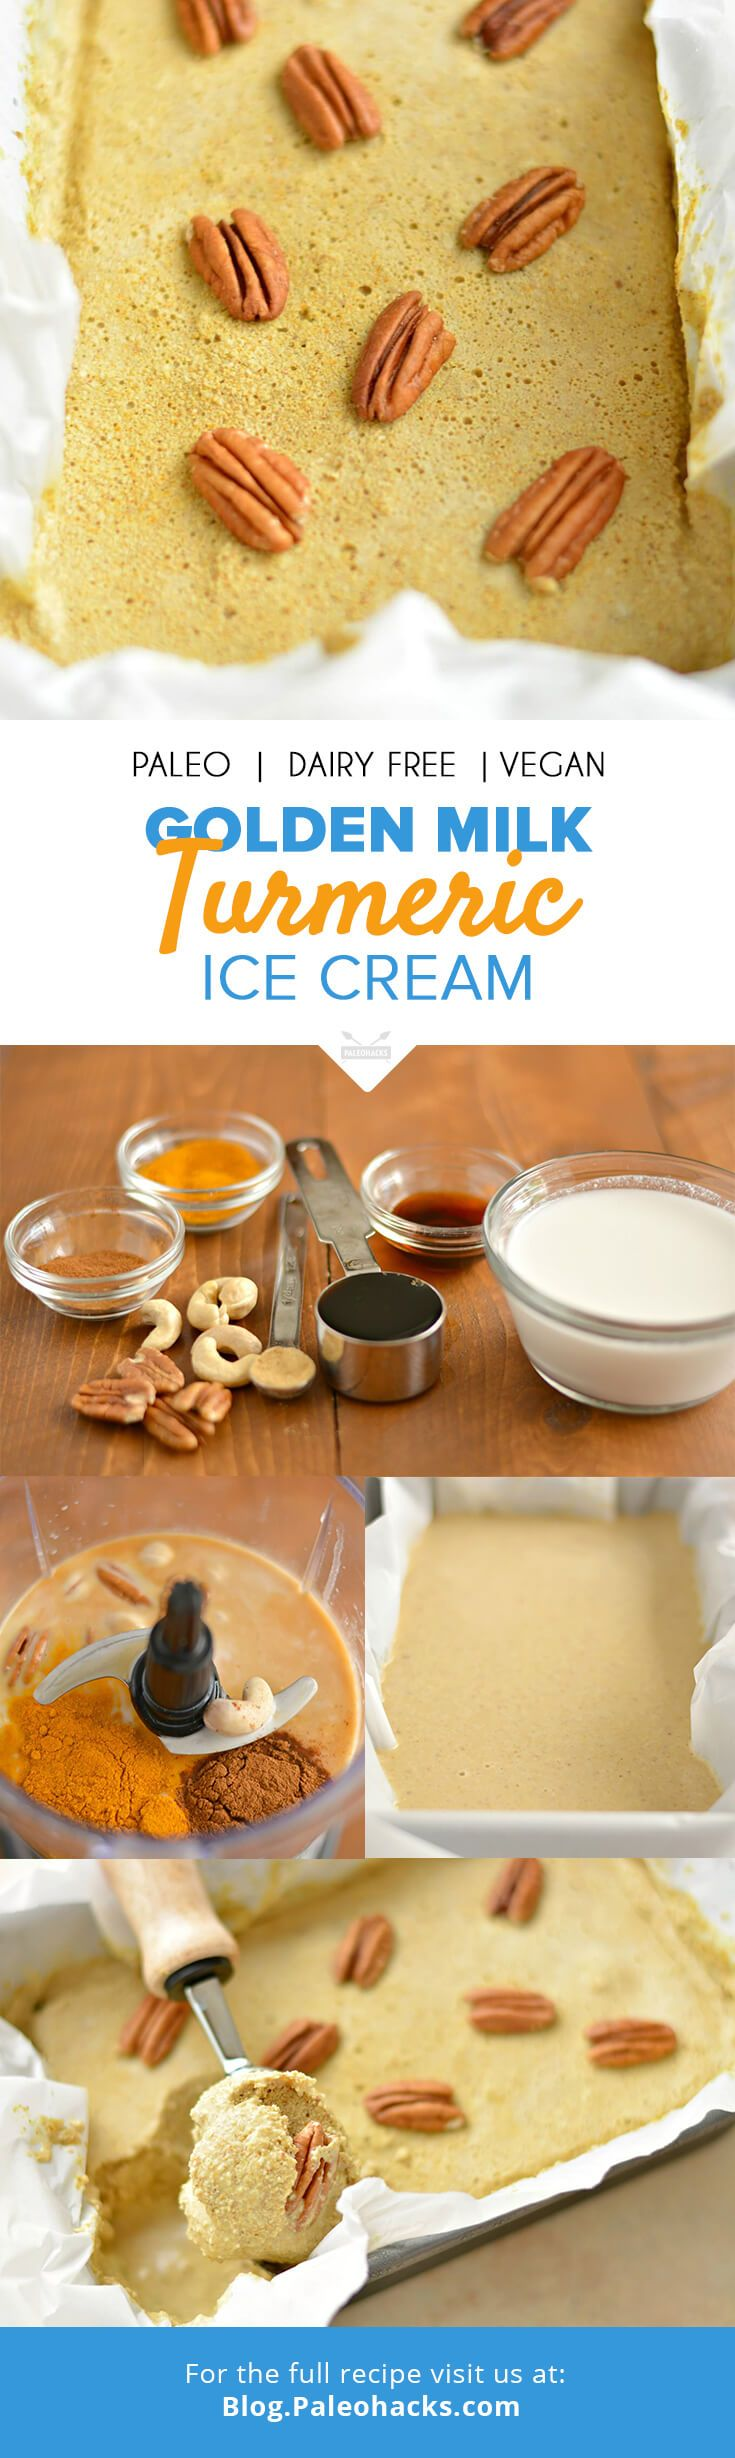 This ice cream recipe is our new favorite way to enjoy turmeric!